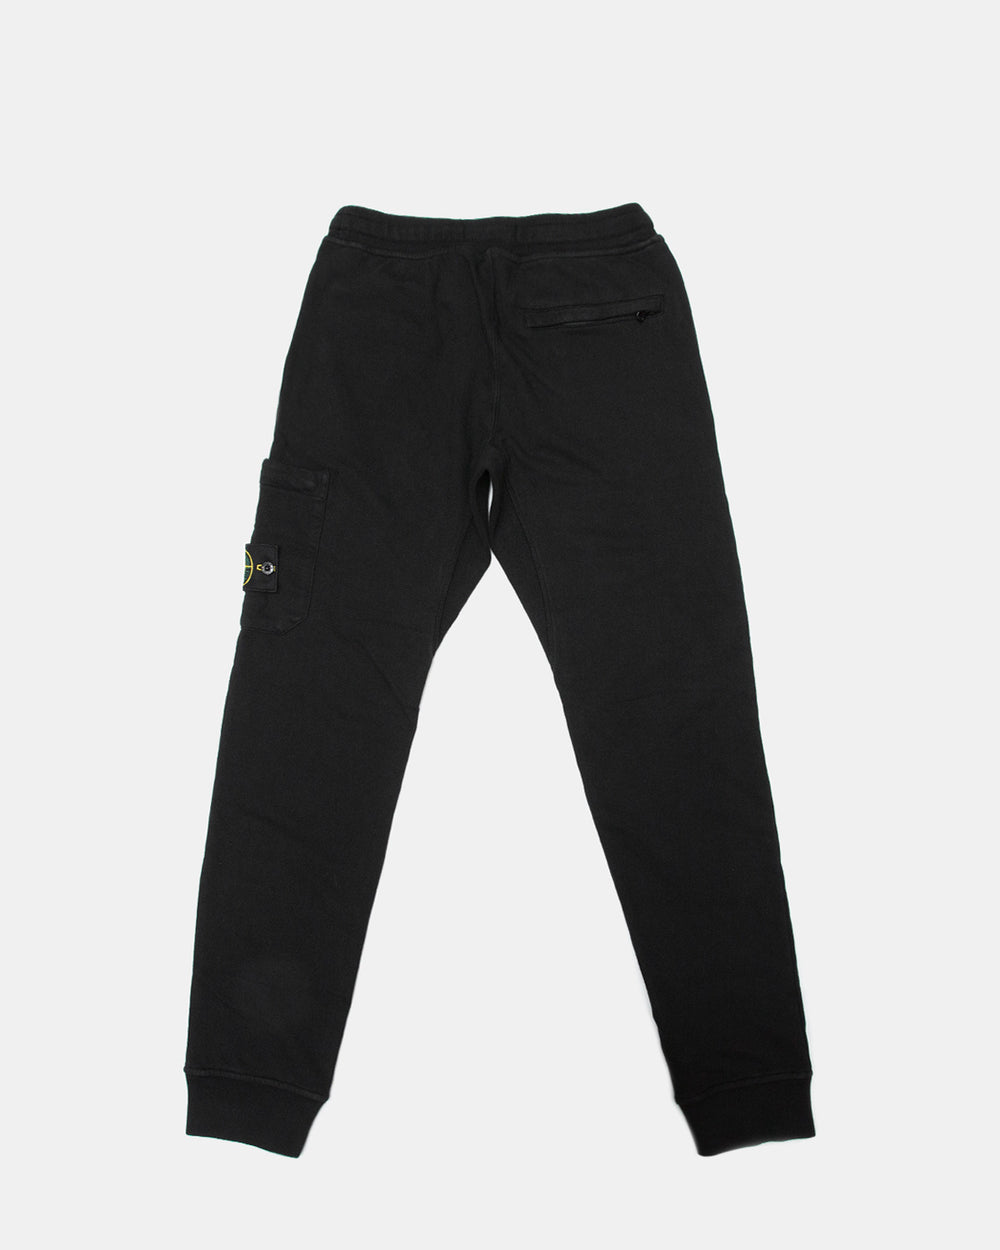 Stone Island - 60340 Fleece Sweatpants (Black)